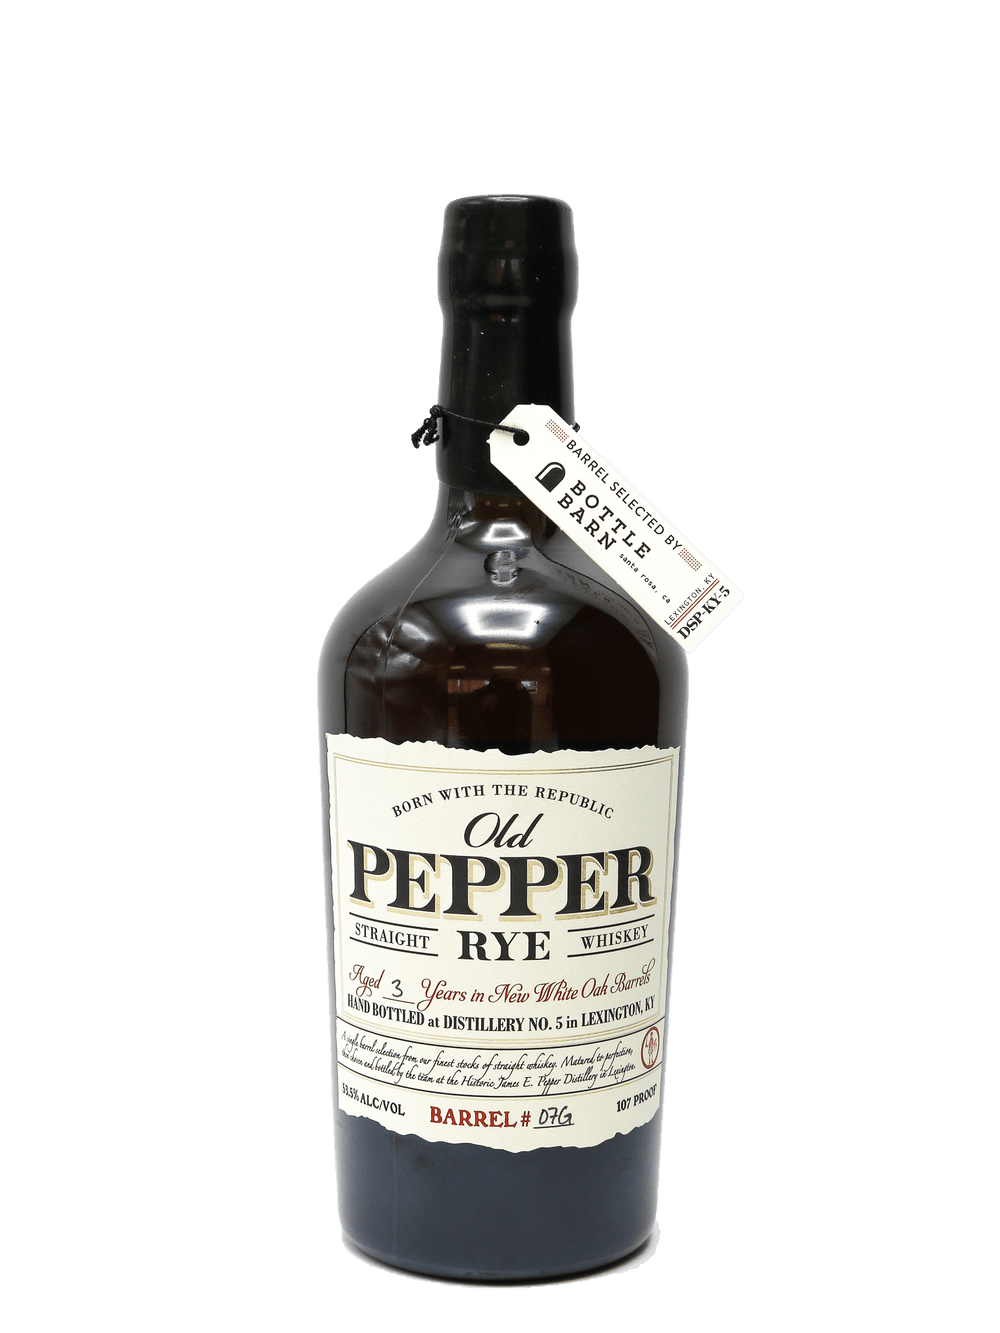 Old Pepper Straight Rye Whiskey 3 Year Single Barrel 750ml